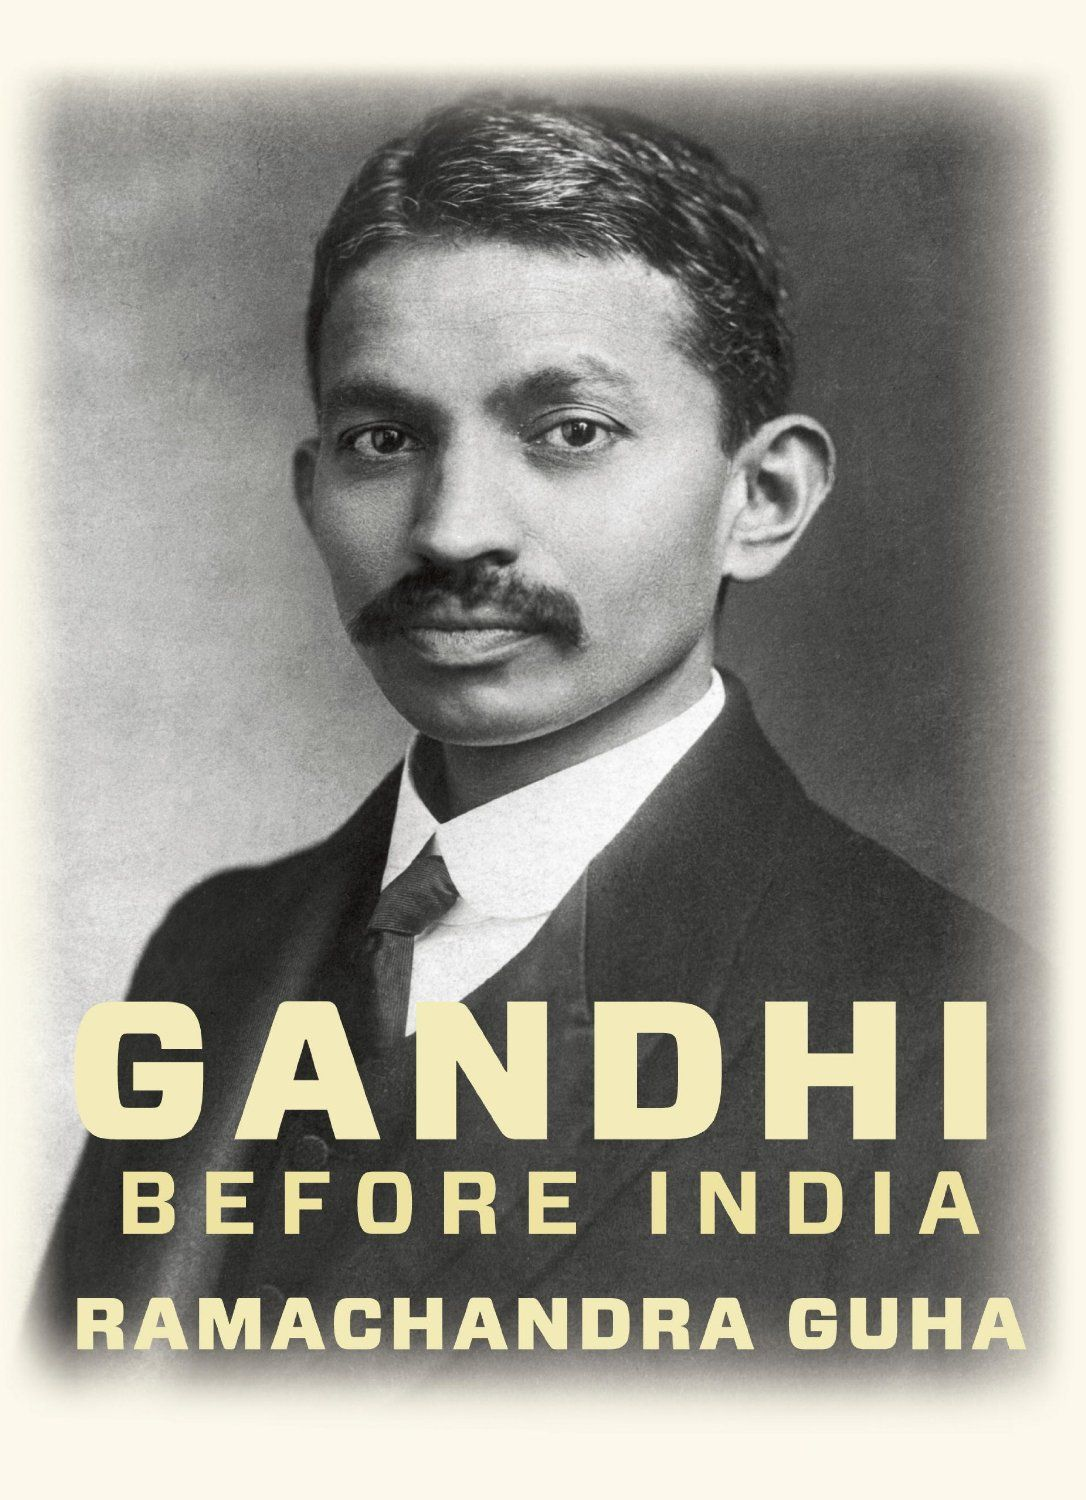 'Gandhi Before India'